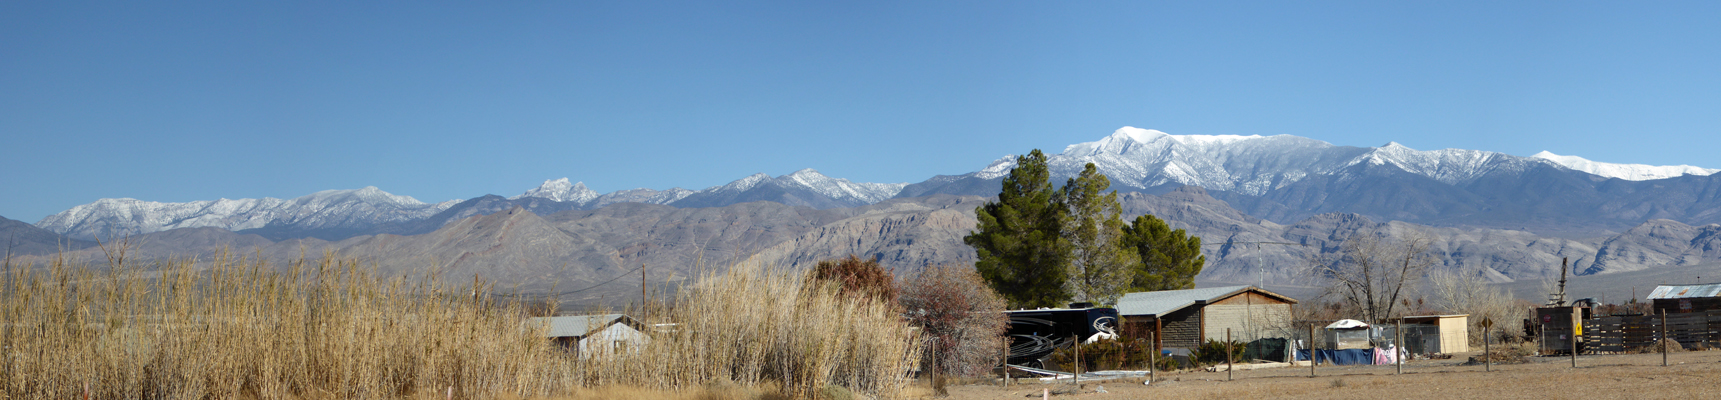 Snow on mountains east of Pahrump NV